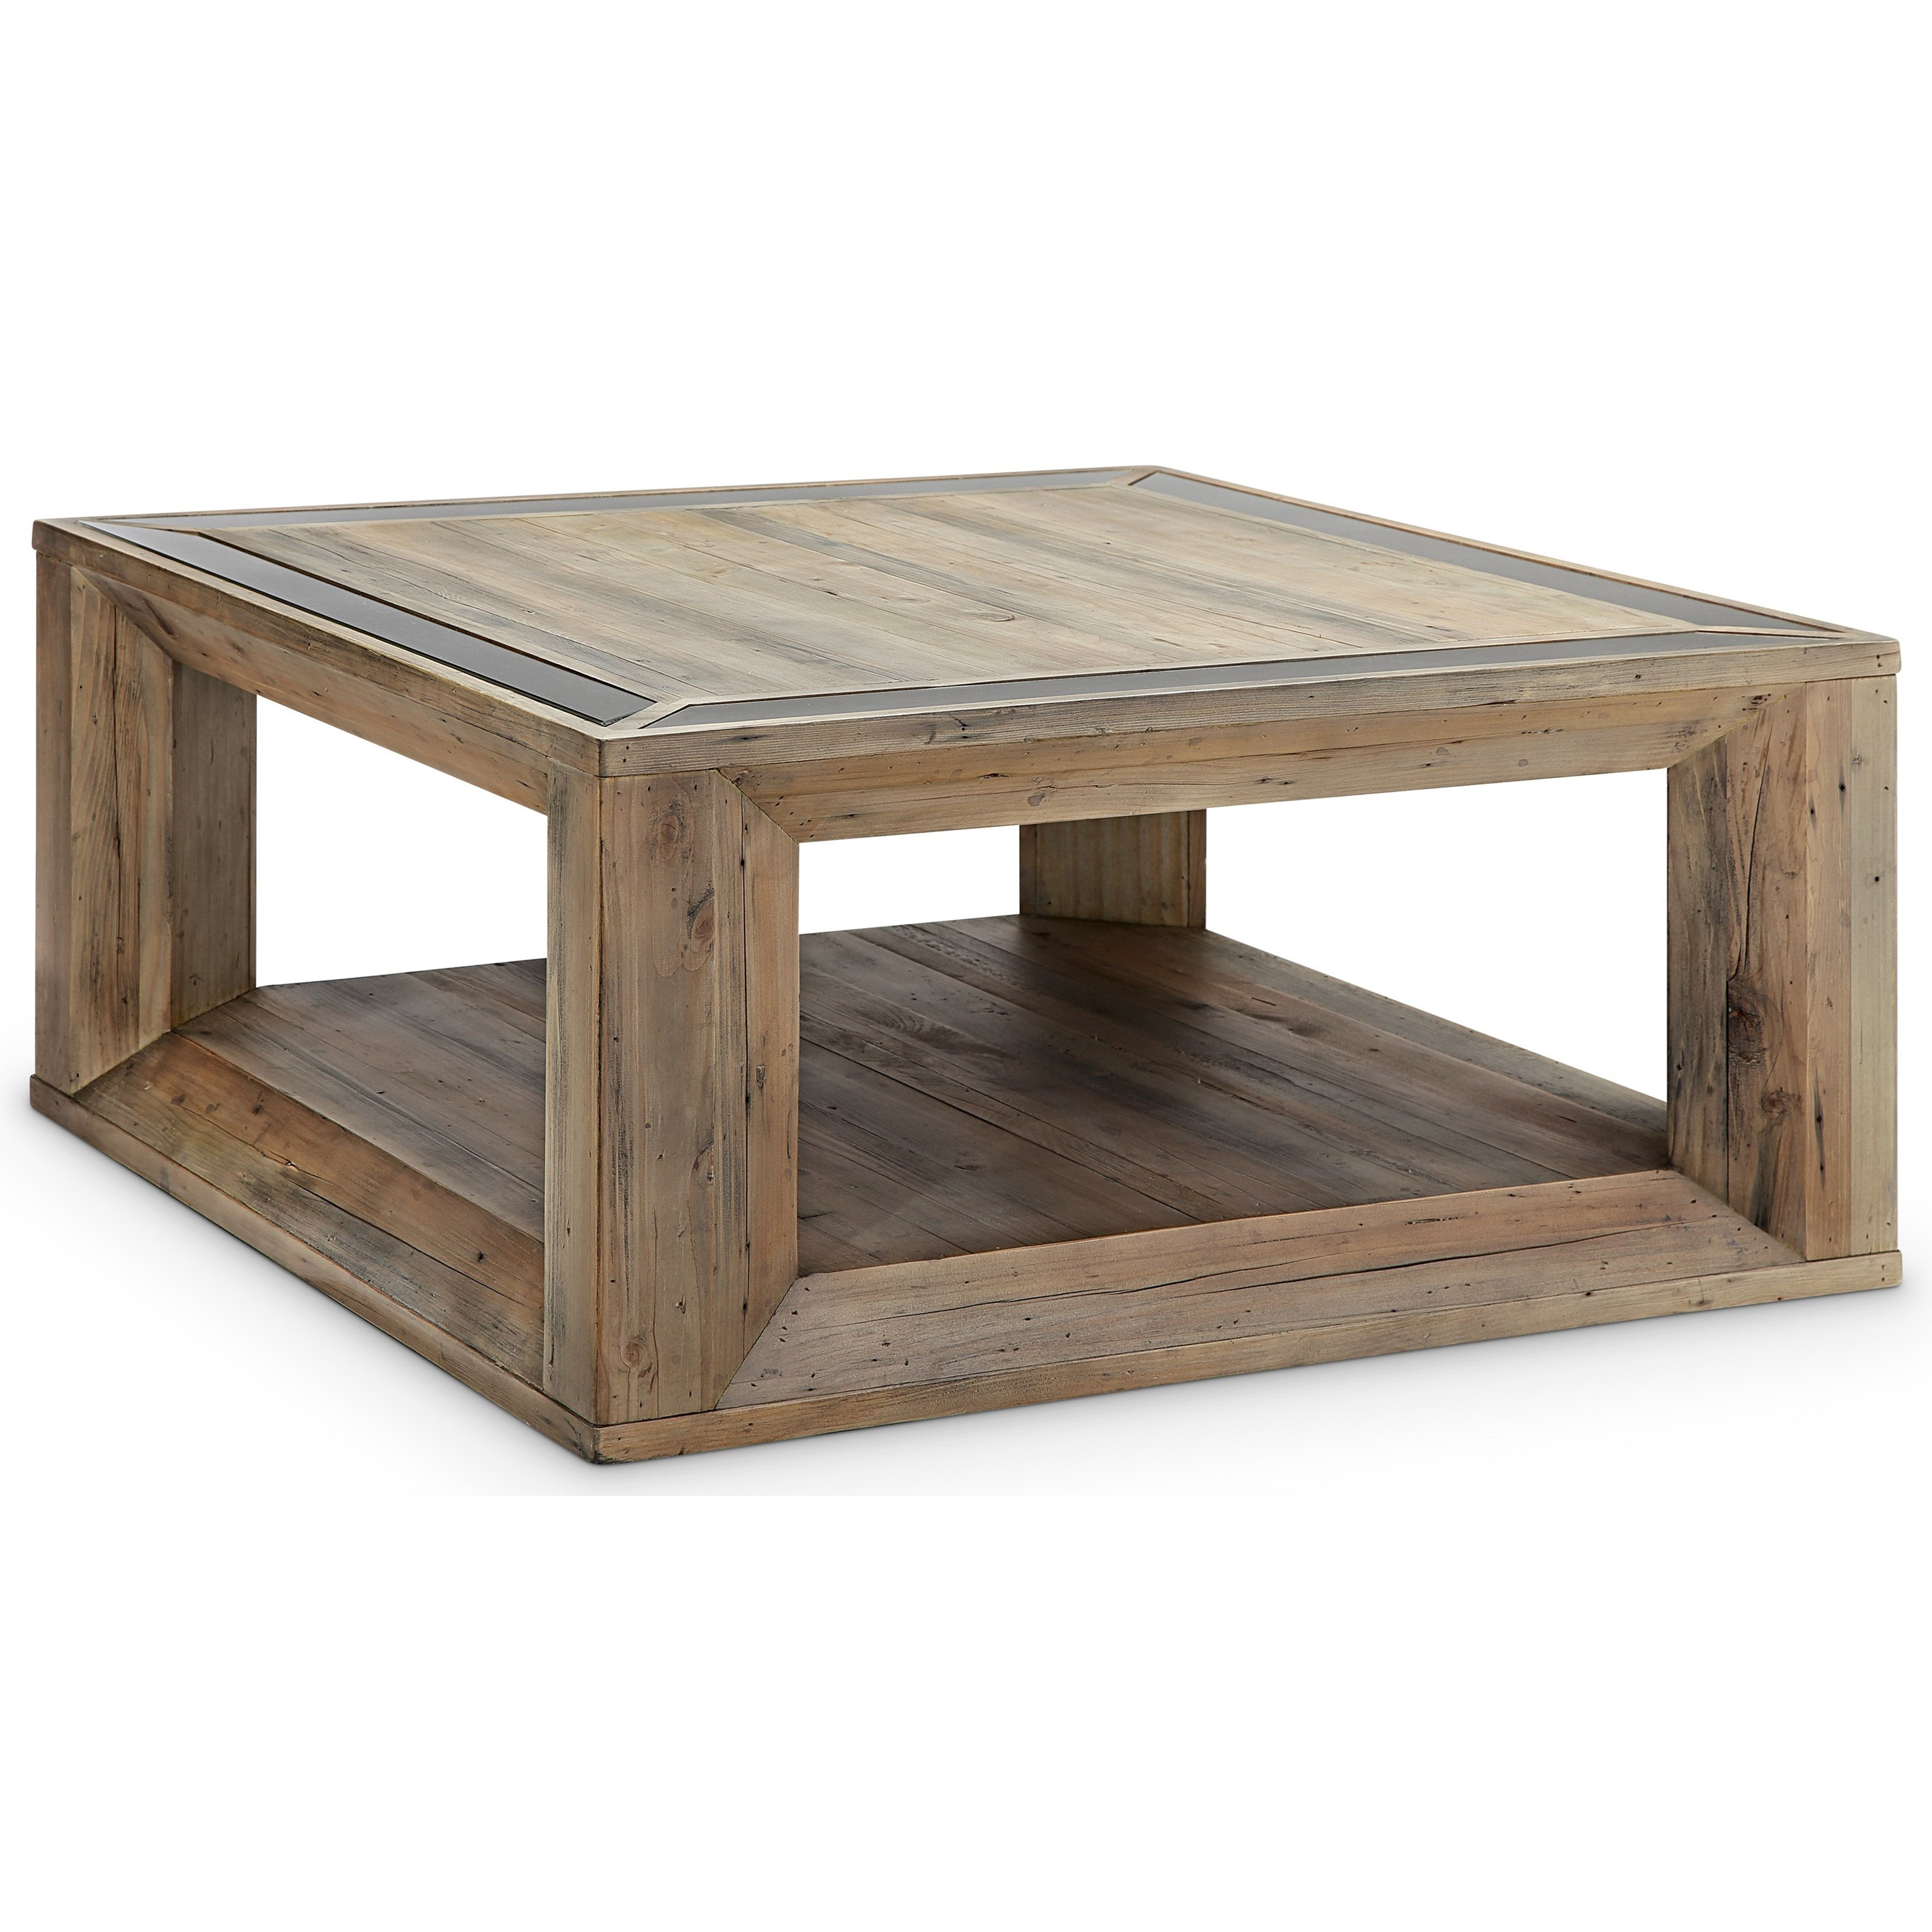 Square Cocktail Table with Casters